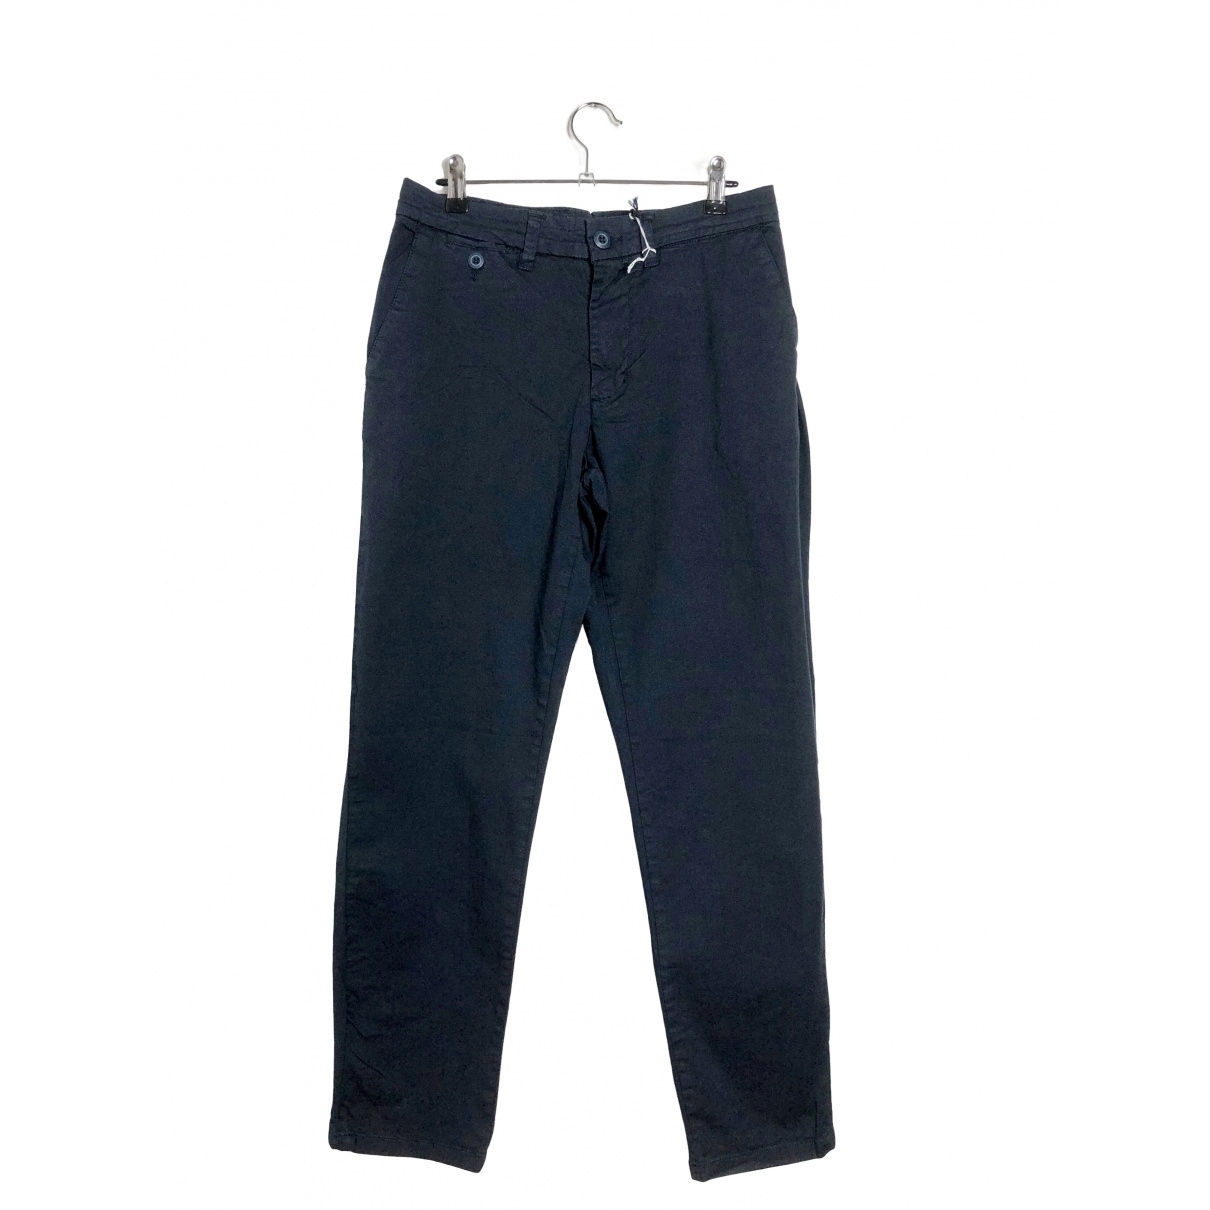 Trussardi \N Blue Cotton Trousers for Men 50 IT